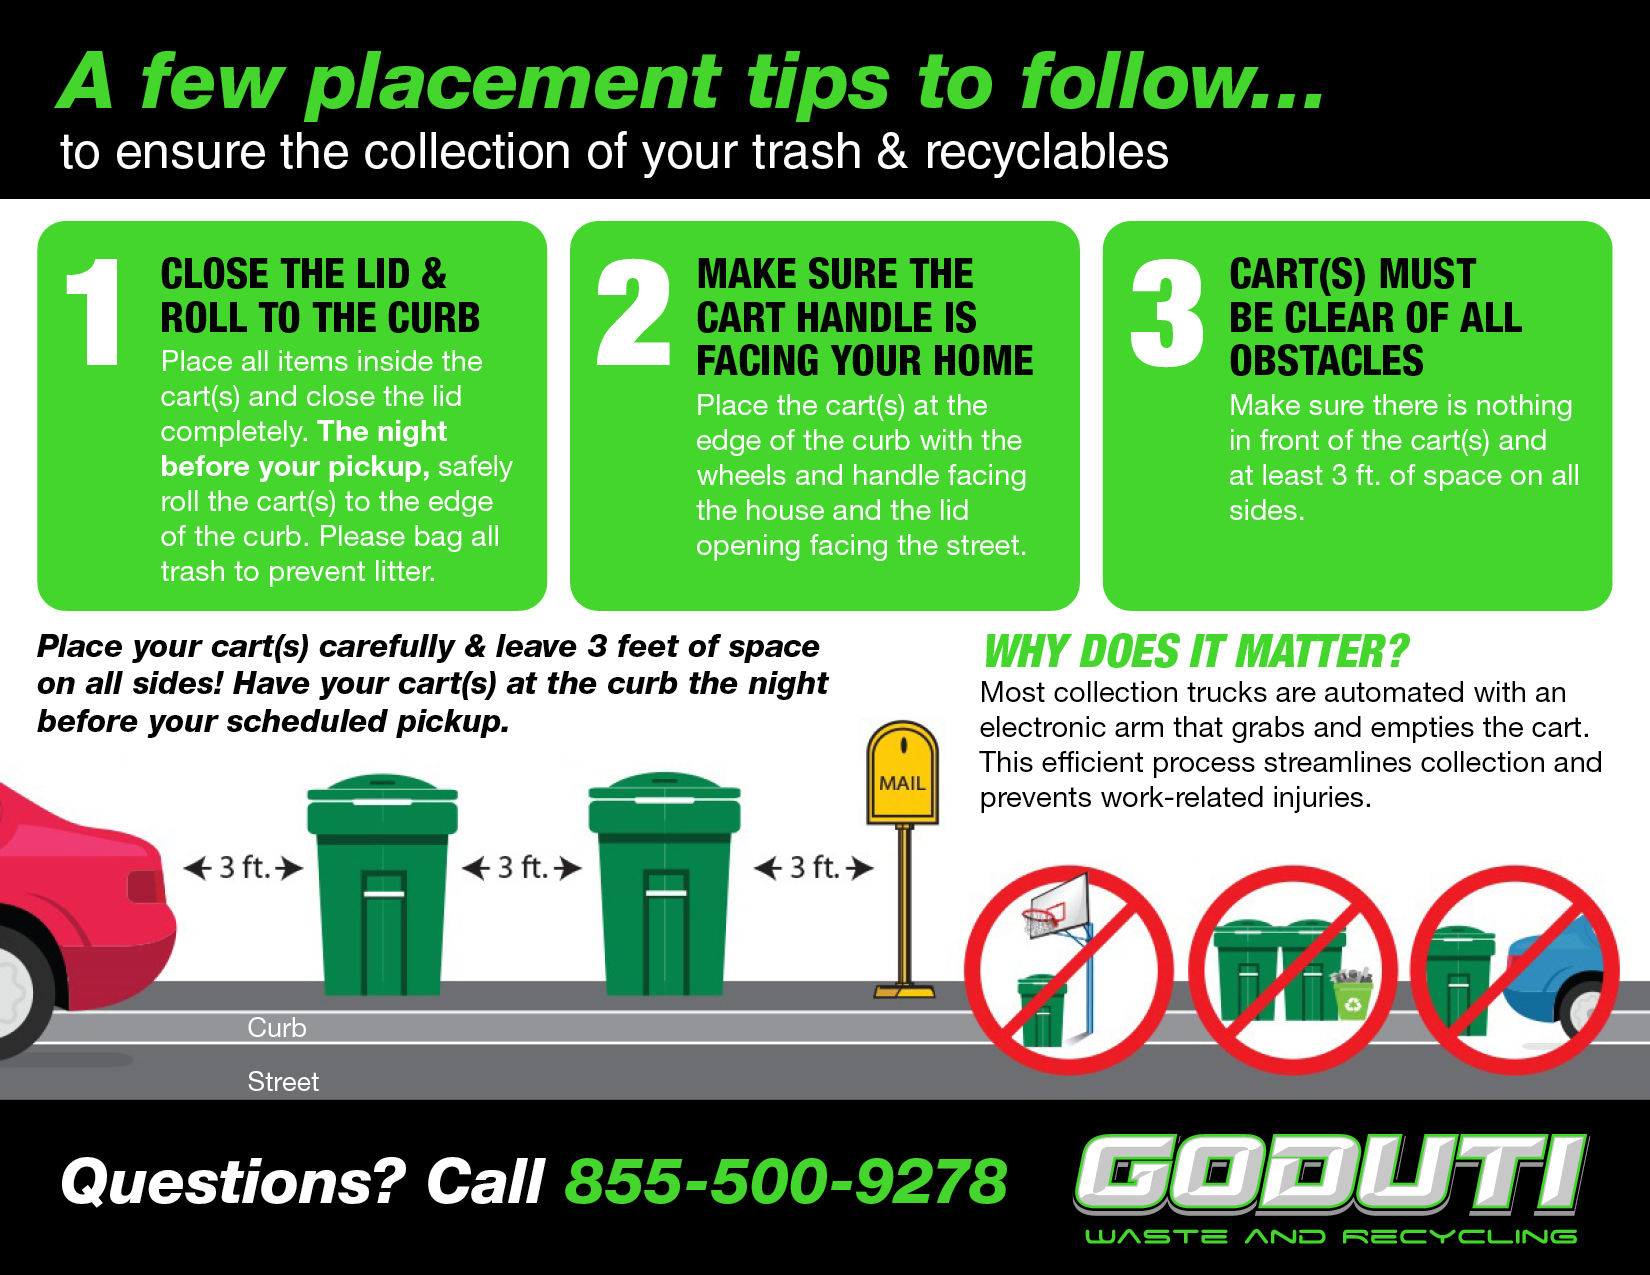 Goduti Waste Helpful Tips